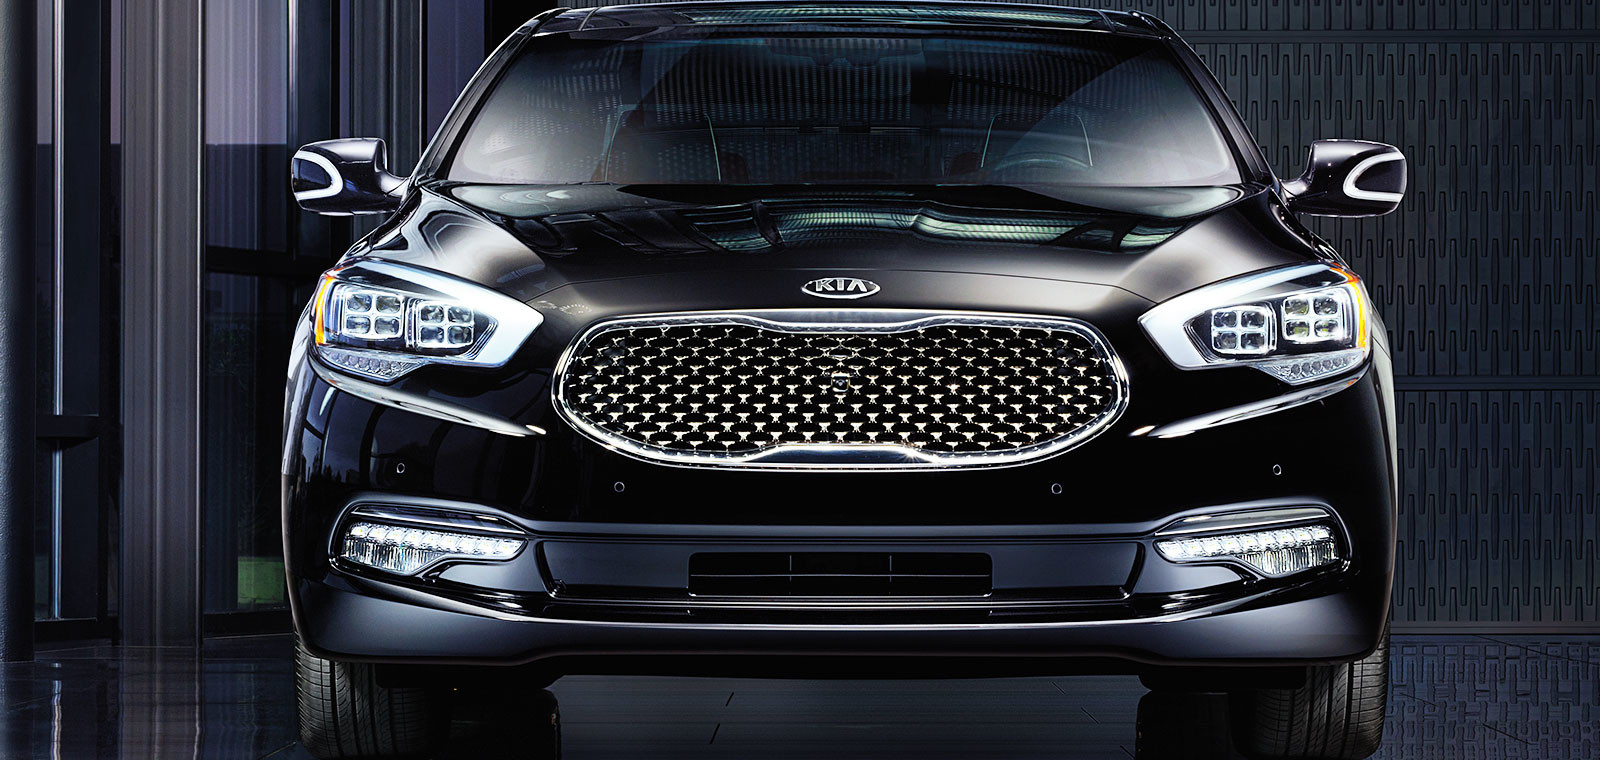 New 2015 Kia K900 parking| Quirk Kia in Manchester NH